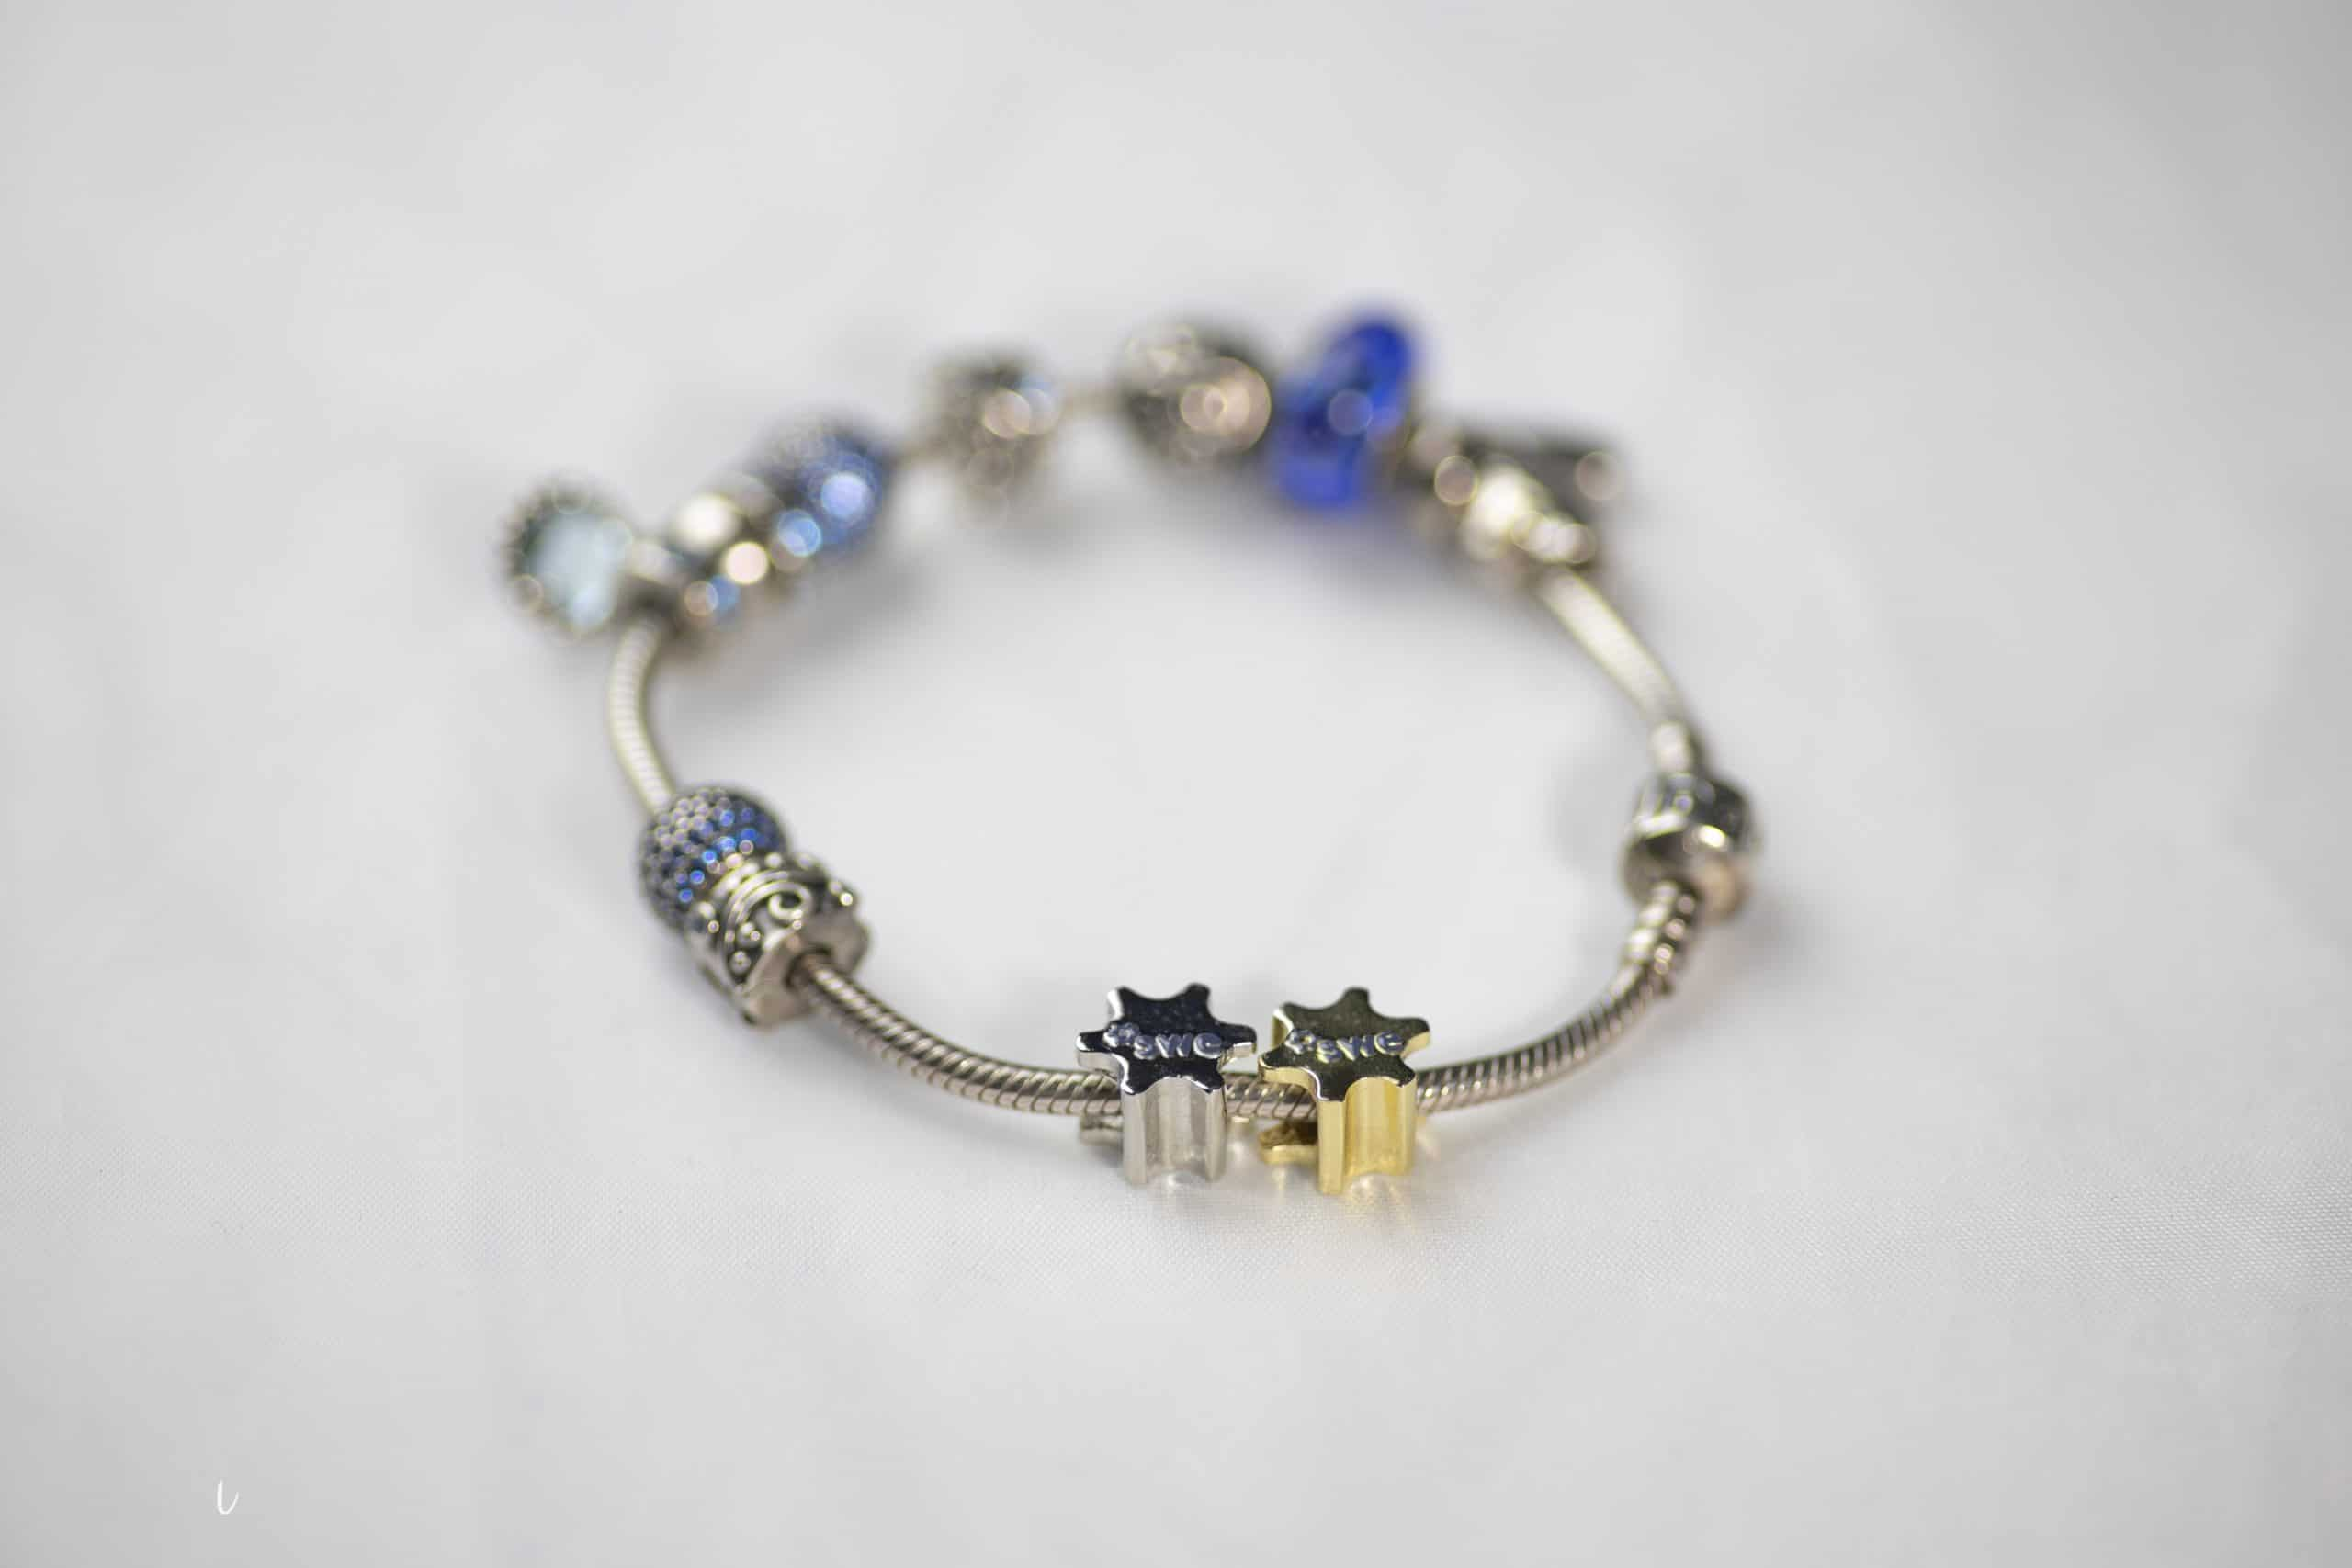 SWE Charms on Bracelet